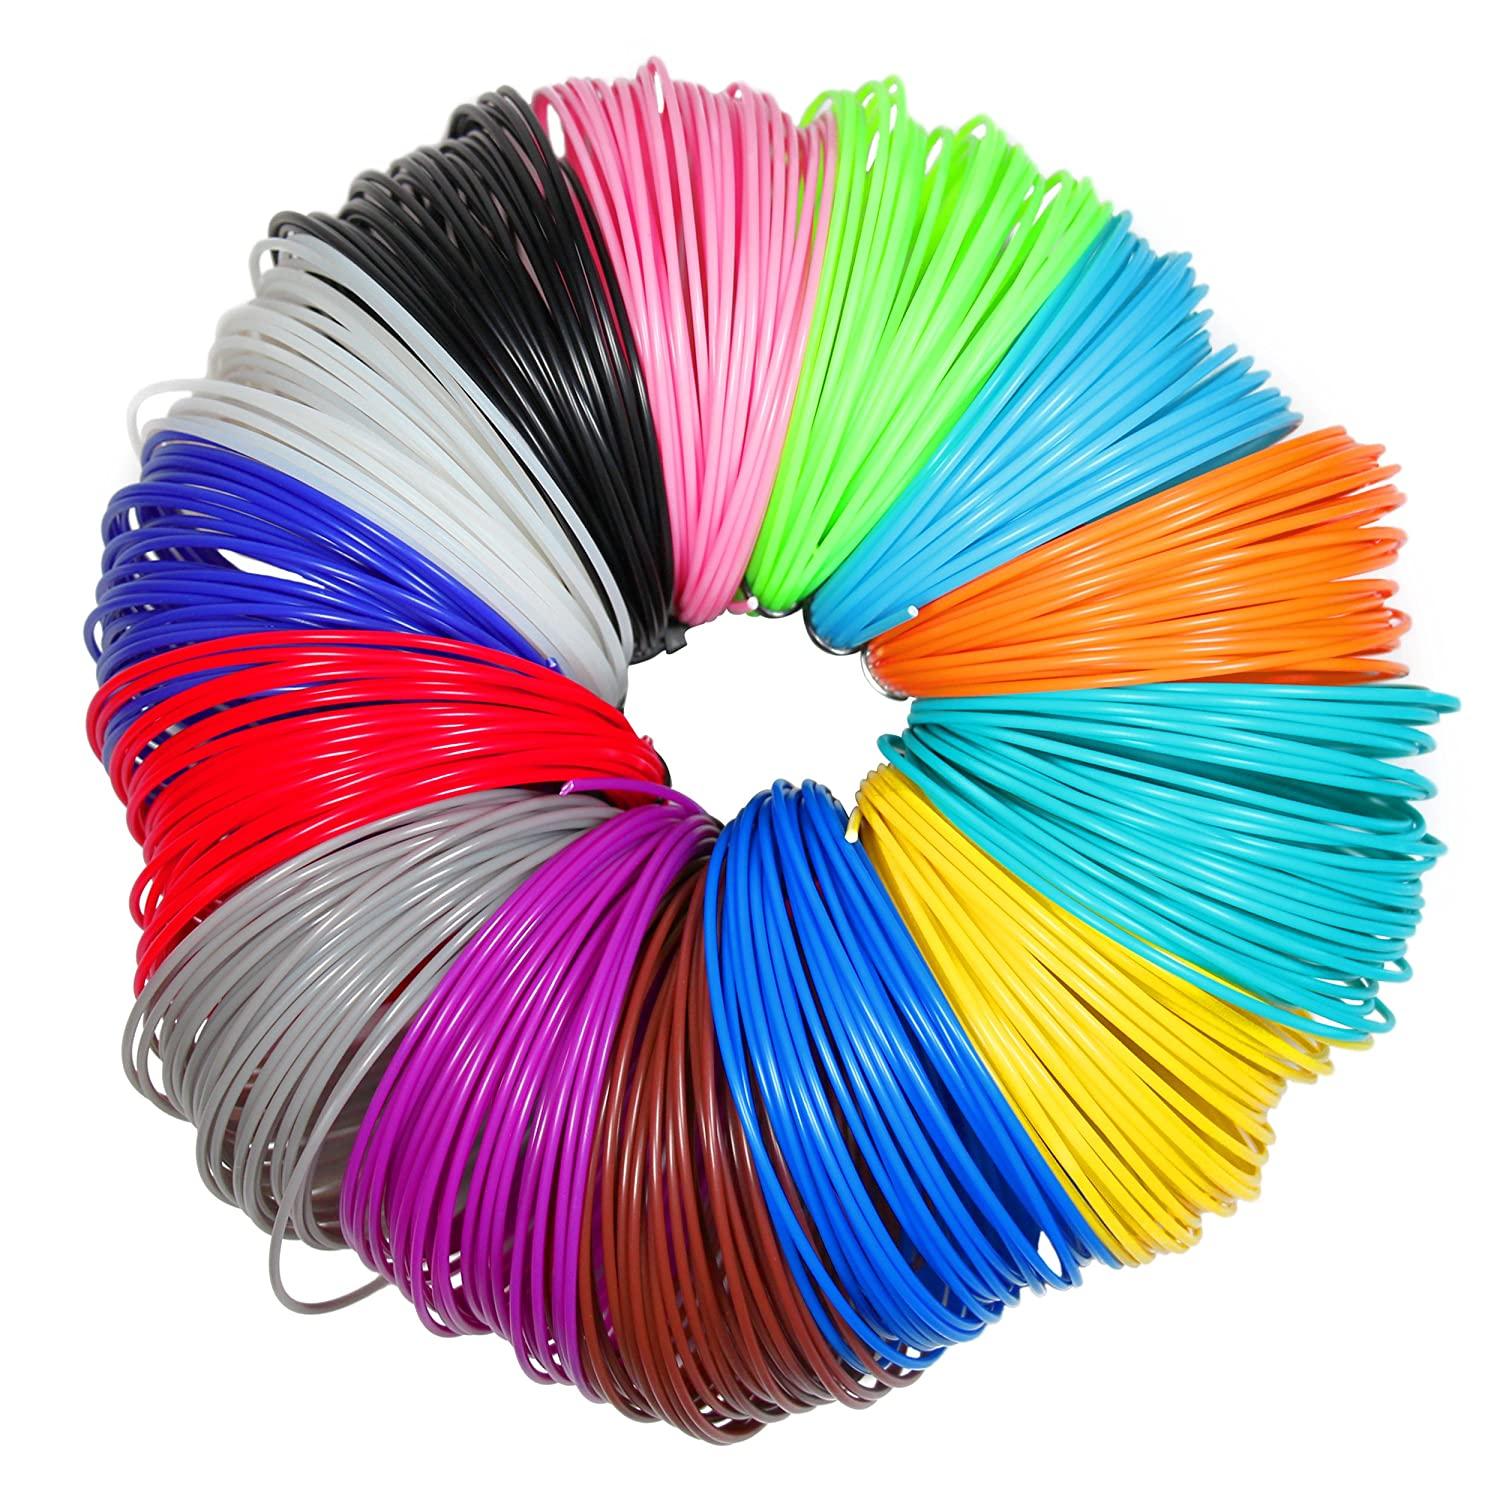 3D Pen Filament Refills - 1.75mm ABS 280 Linear Feet (20 foot each) Total 14 Different colors fun pack. 4 Glow In The Dark Colors & 175 FREE Stencils eBook Included